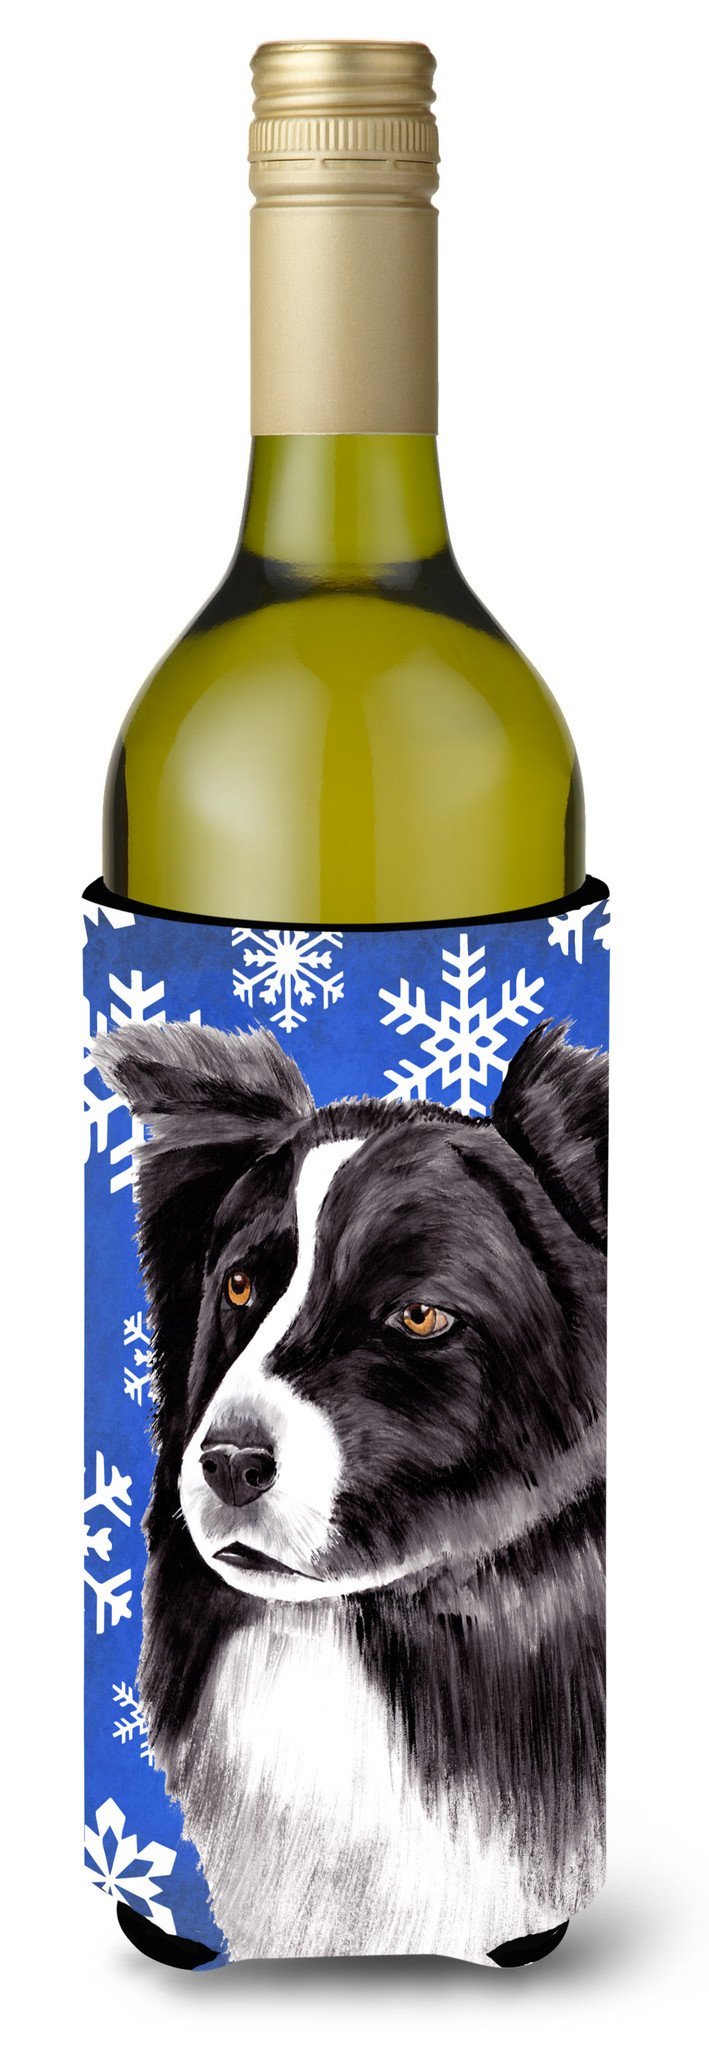 Border Collie Winter Snowflakes Holiday Wine Bottle Beverage Insulator Beverage Insulator Hugger by Caroline's Treasures